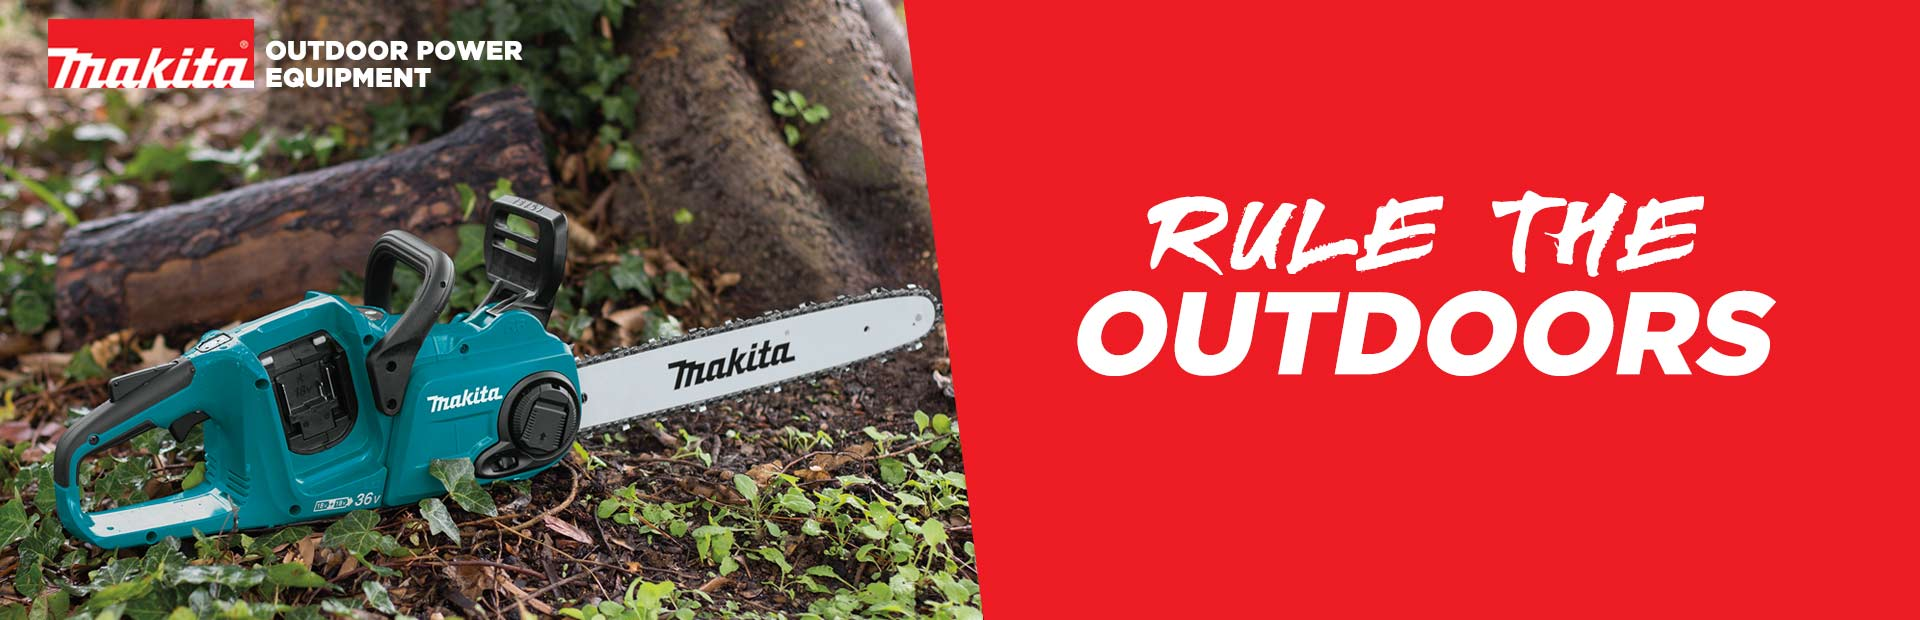 Makita Outdoor Power Equipment: Rule the Outdoors